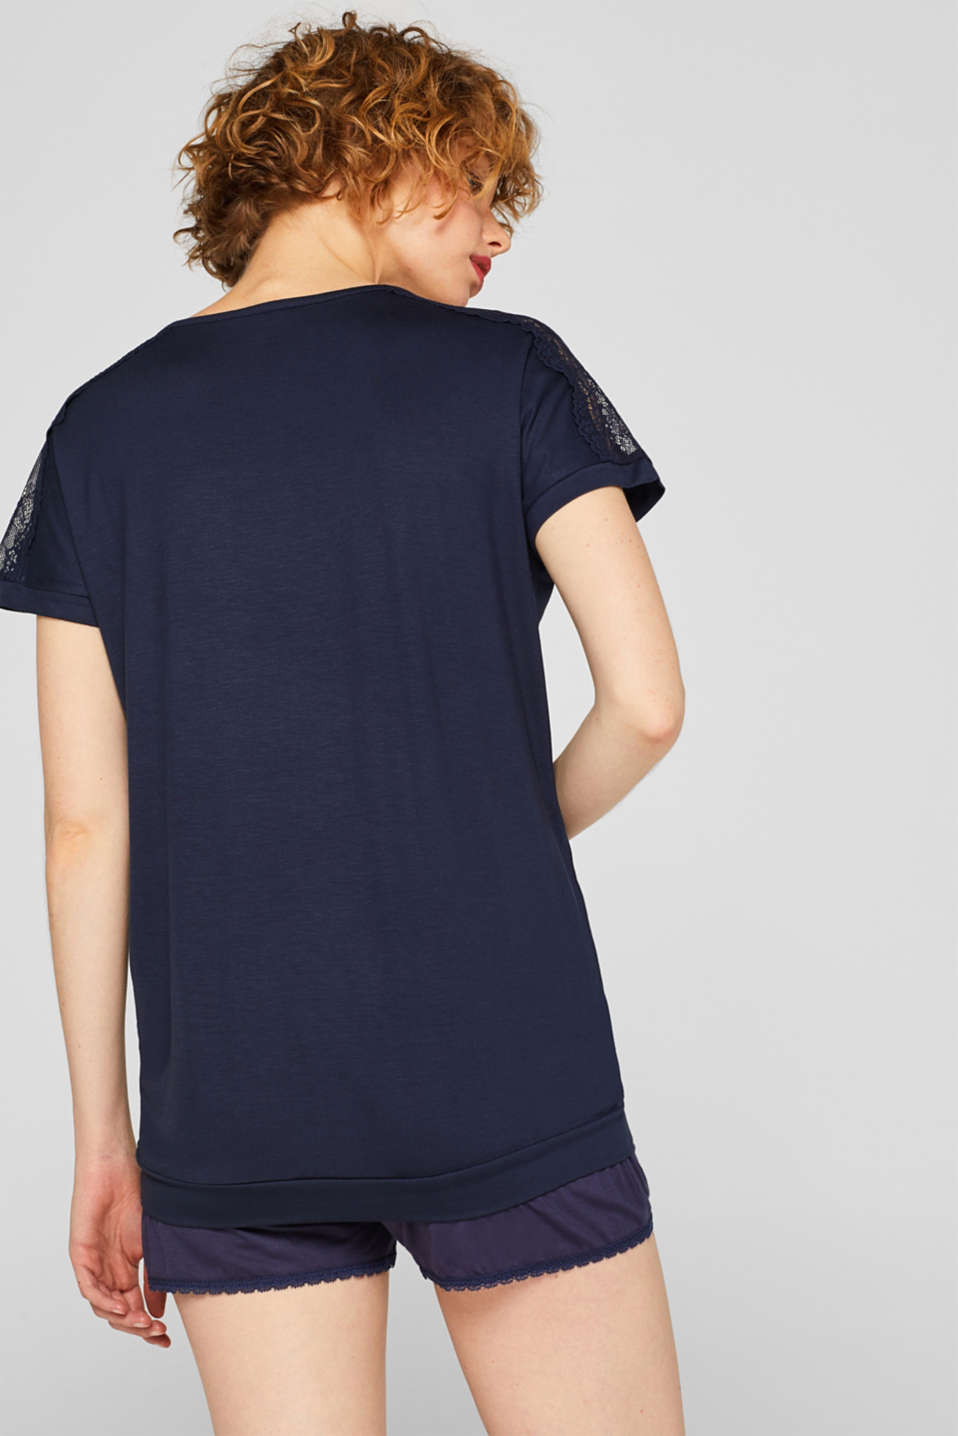 Lace-trimmed stretch T-shirt, NAVY, detail image number 2